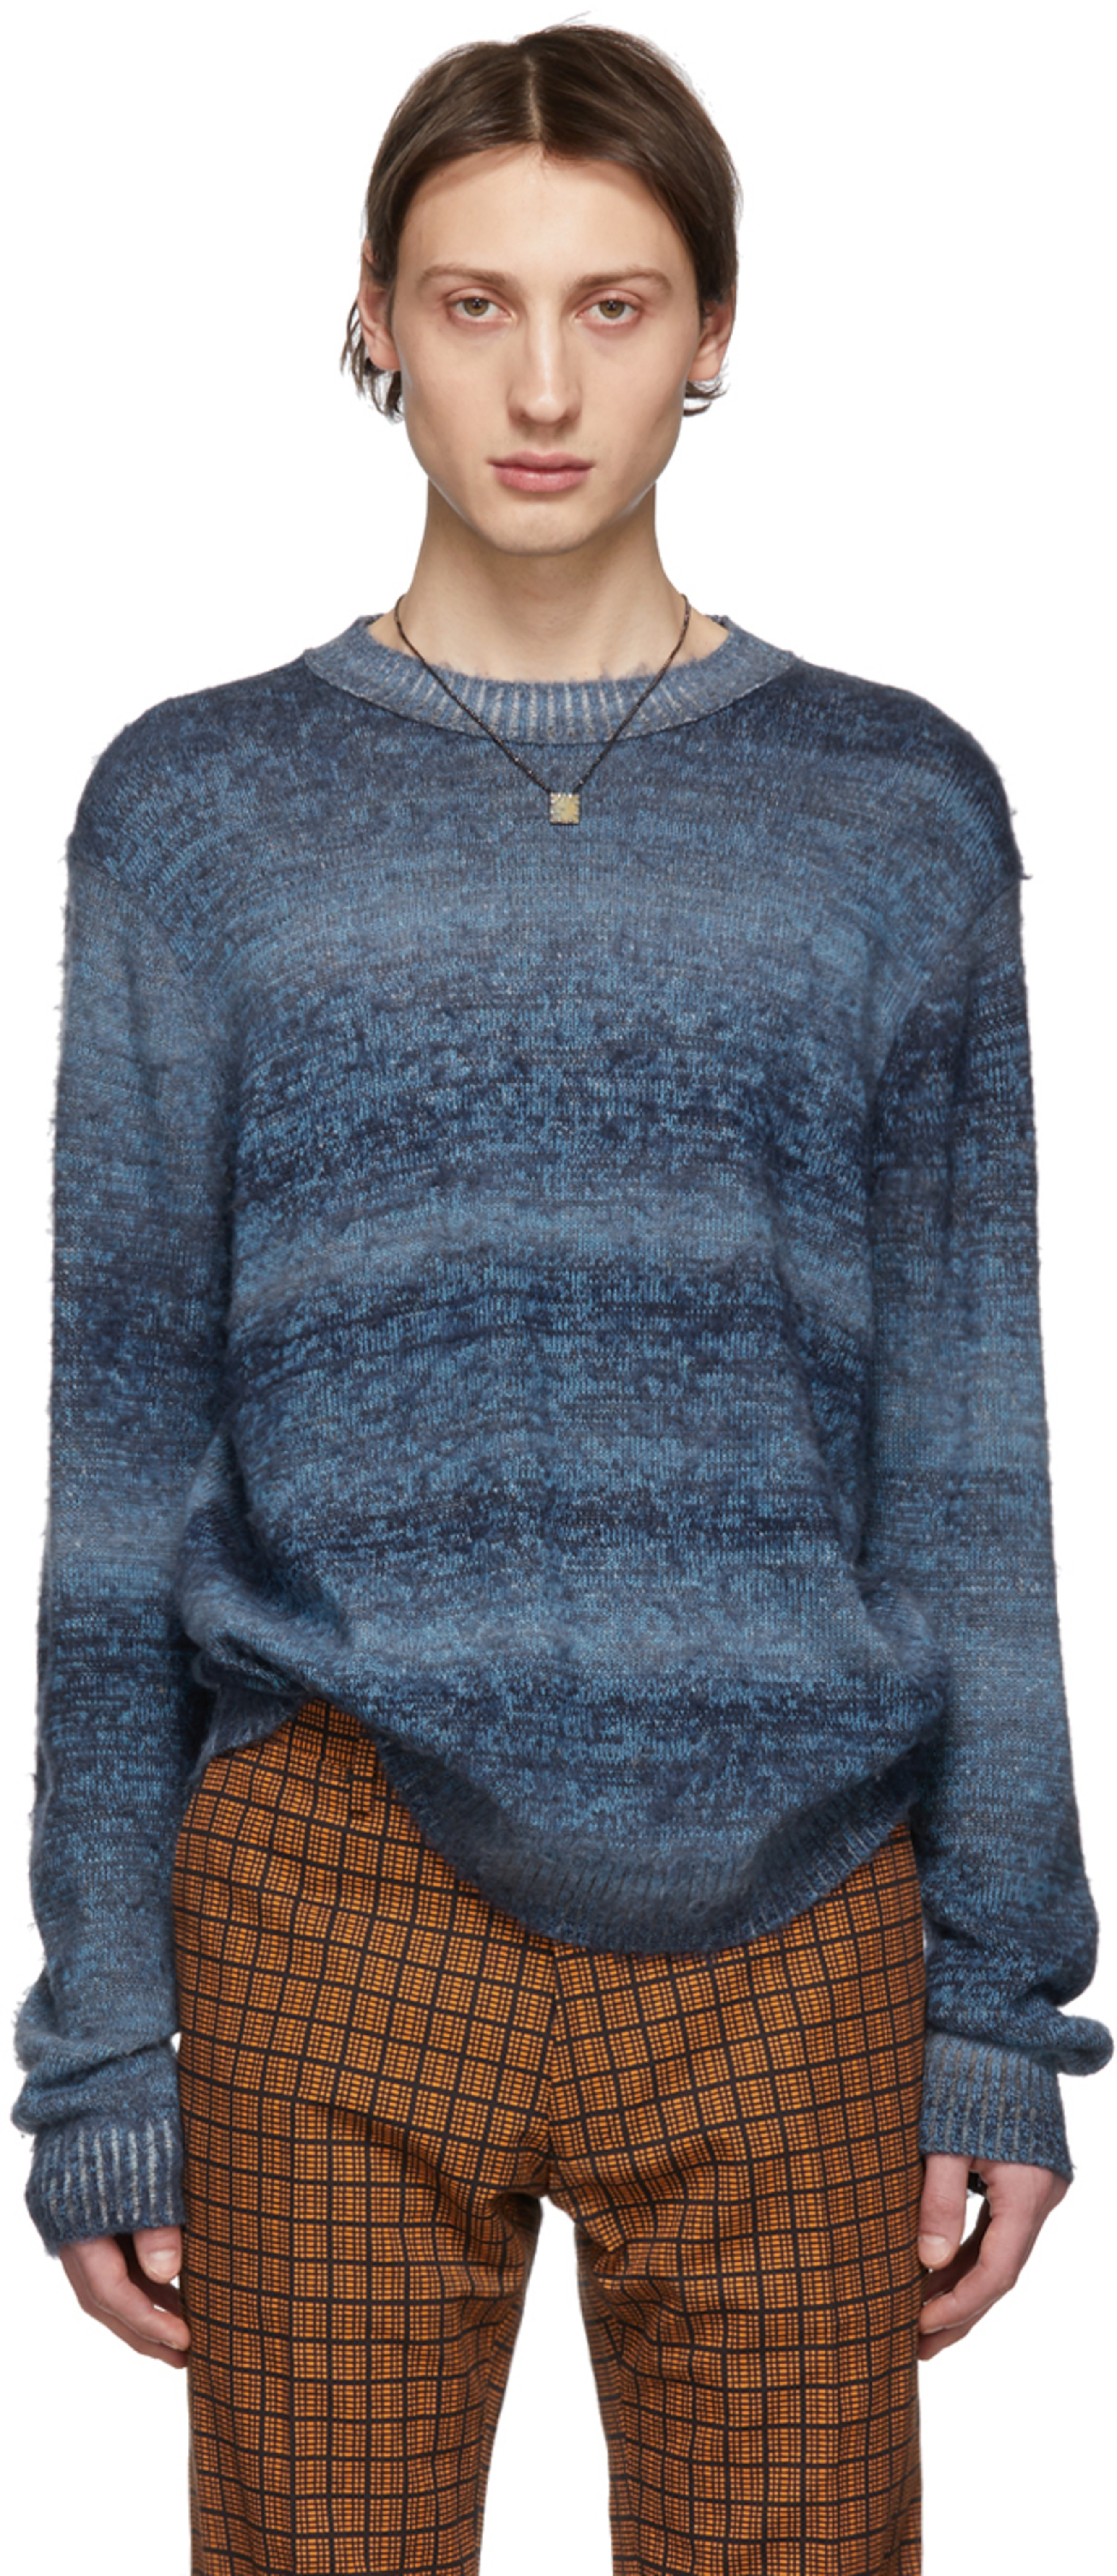 f84aac2a4c6 Acne Studios sweaters for Men